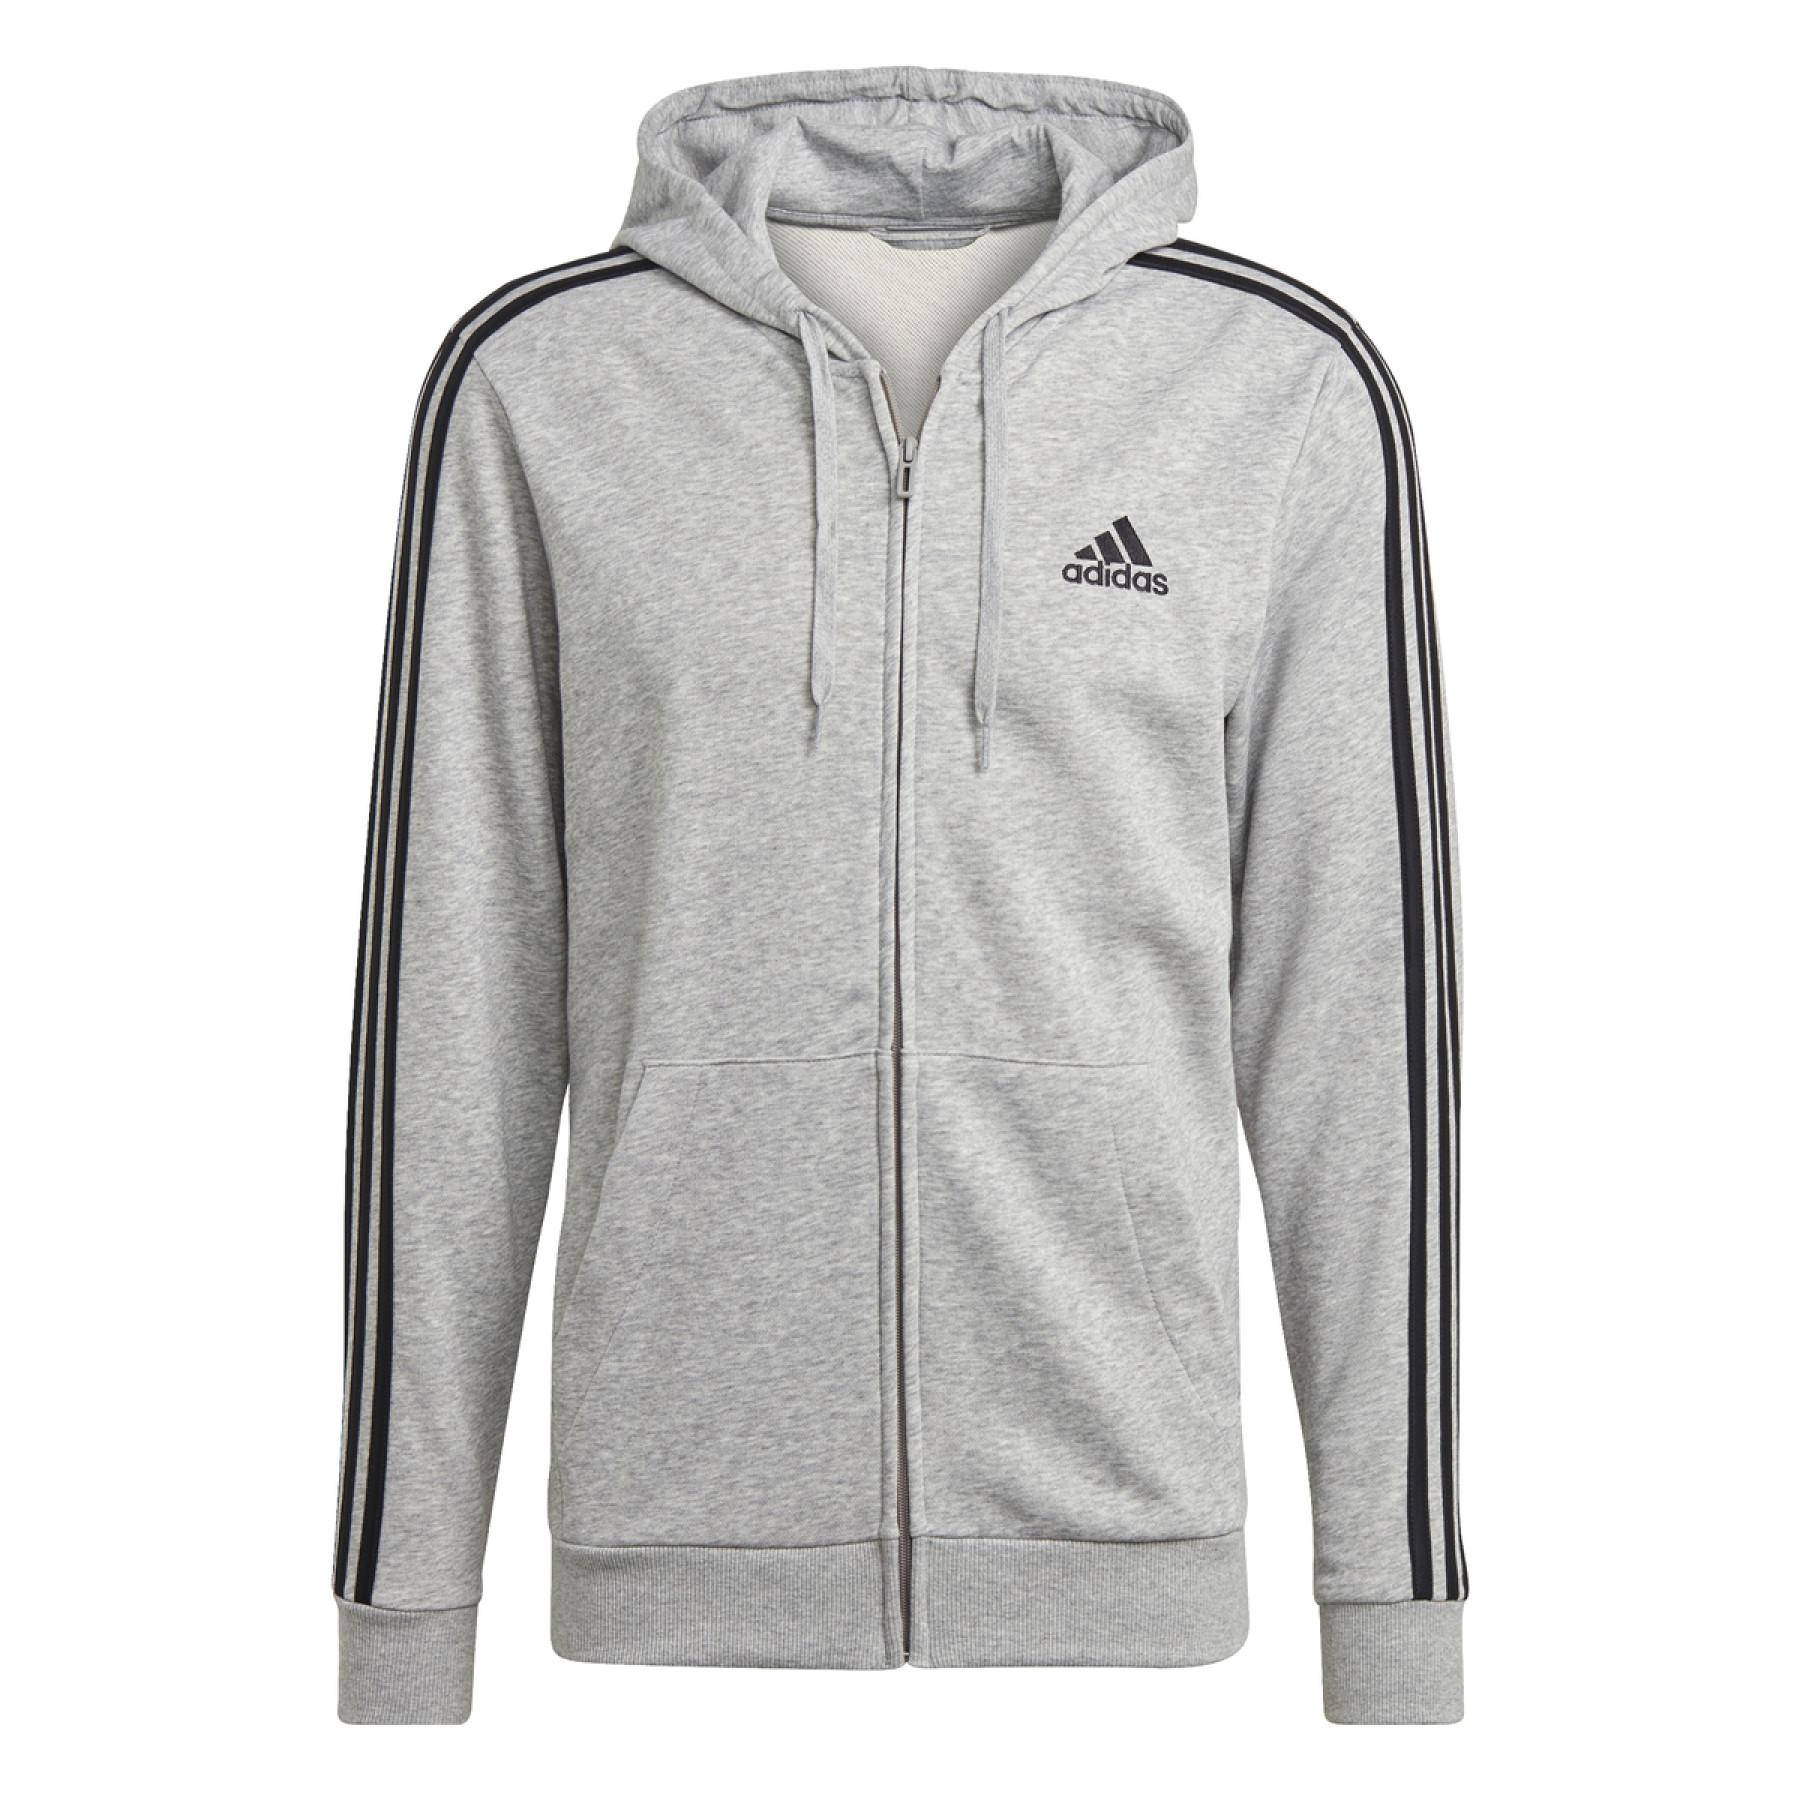 adidas Essentials French Terry 3-Stripes Full-Zip Hoody